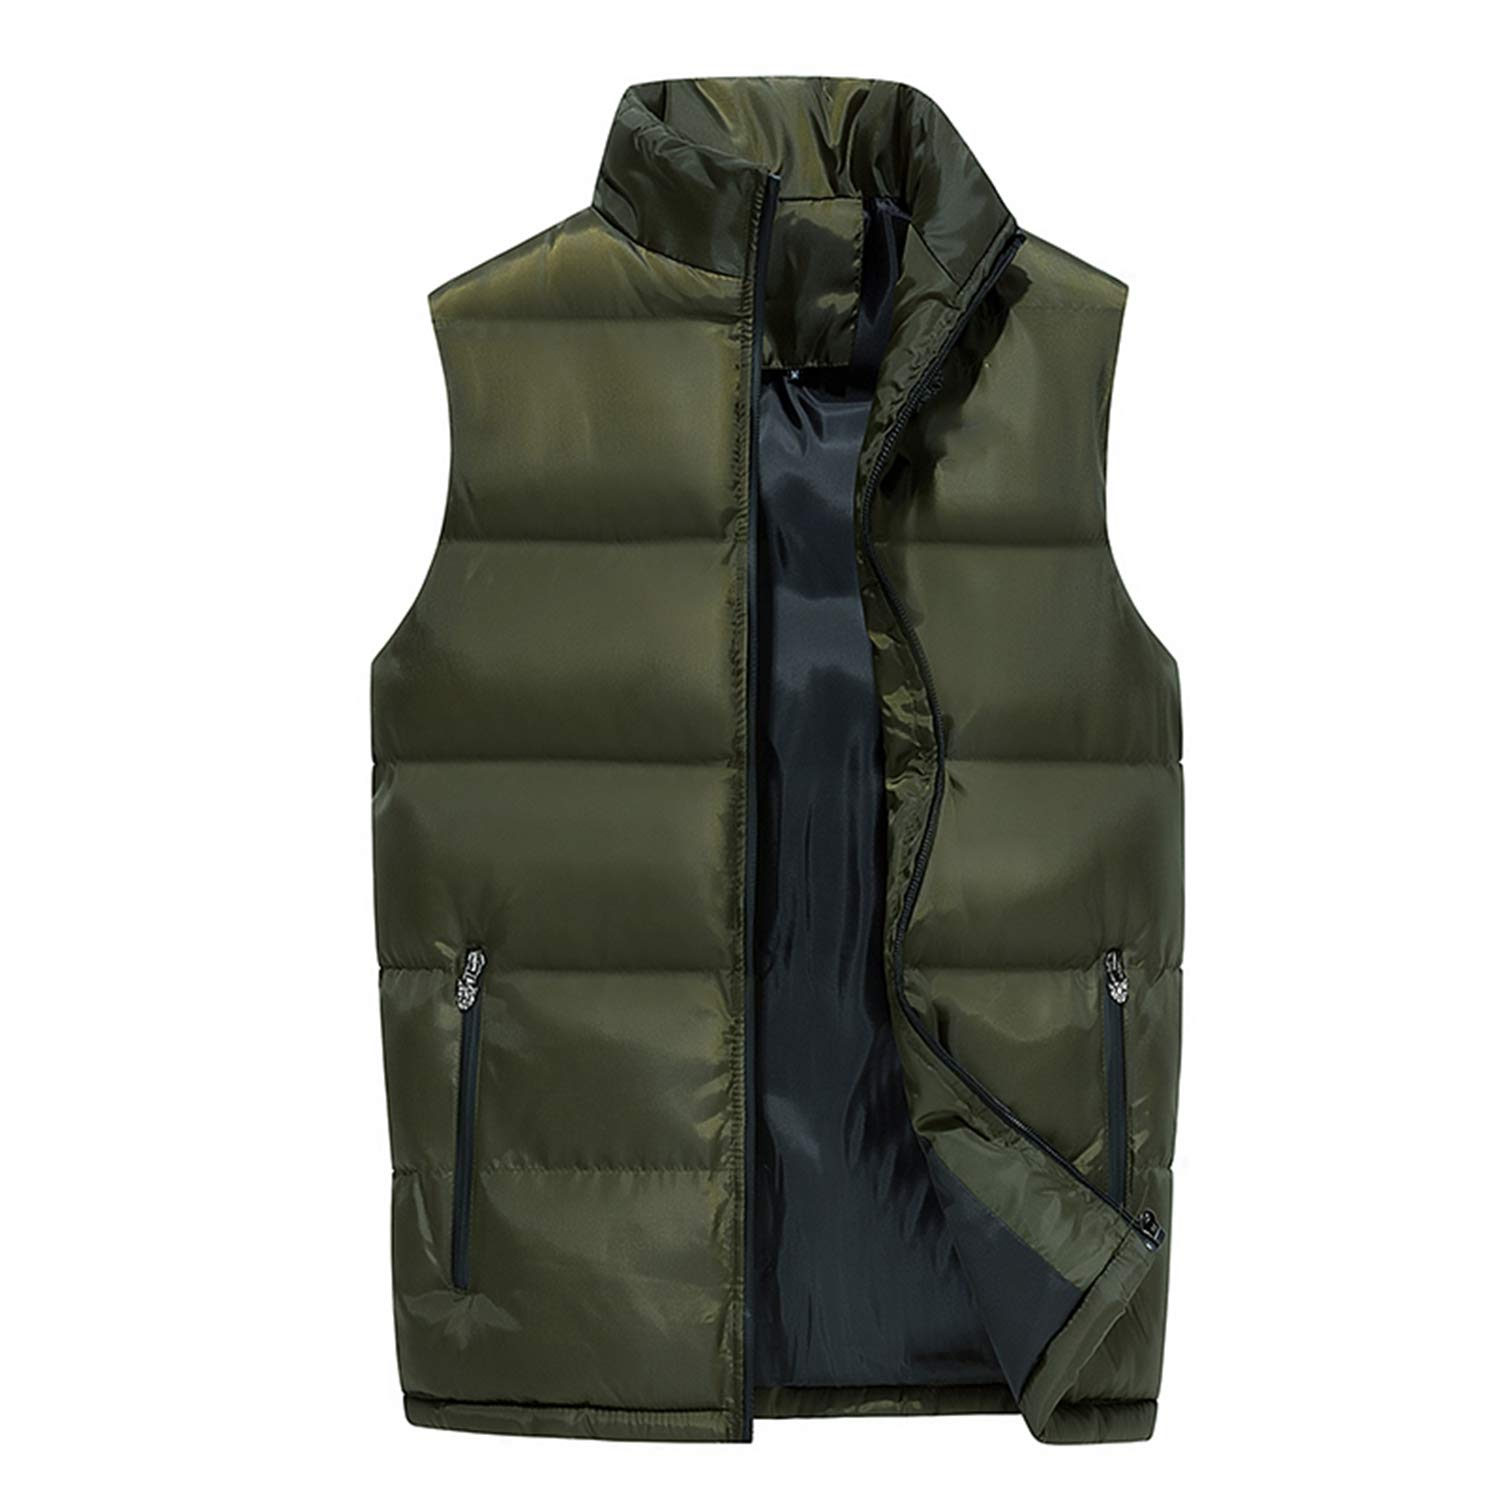 Fashion Men Cotton Vest Autumn and Winter Thickening Warm Vesst Men Windproof Sleeveless Jacket Mens Lovers Couple Waistcoats